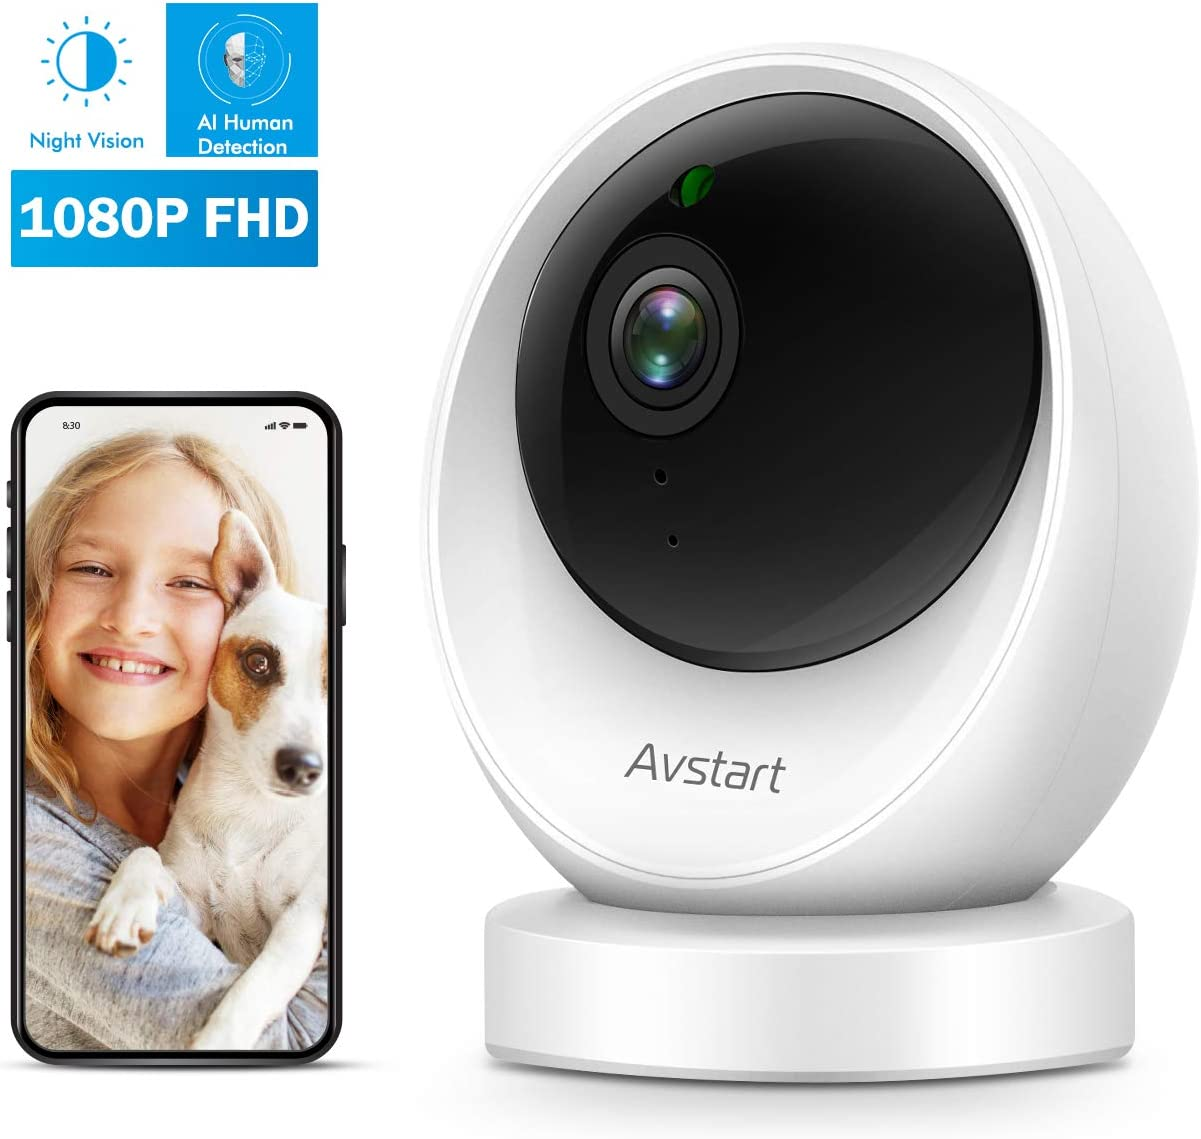 Furbo Dog Camera Treat Tossing, Full HD Wifi Pet Camera and 2-Way Audio, Designed for Dogs, Compatible with Alexa As Seen On Ellen , white 001-01WHTOA-1